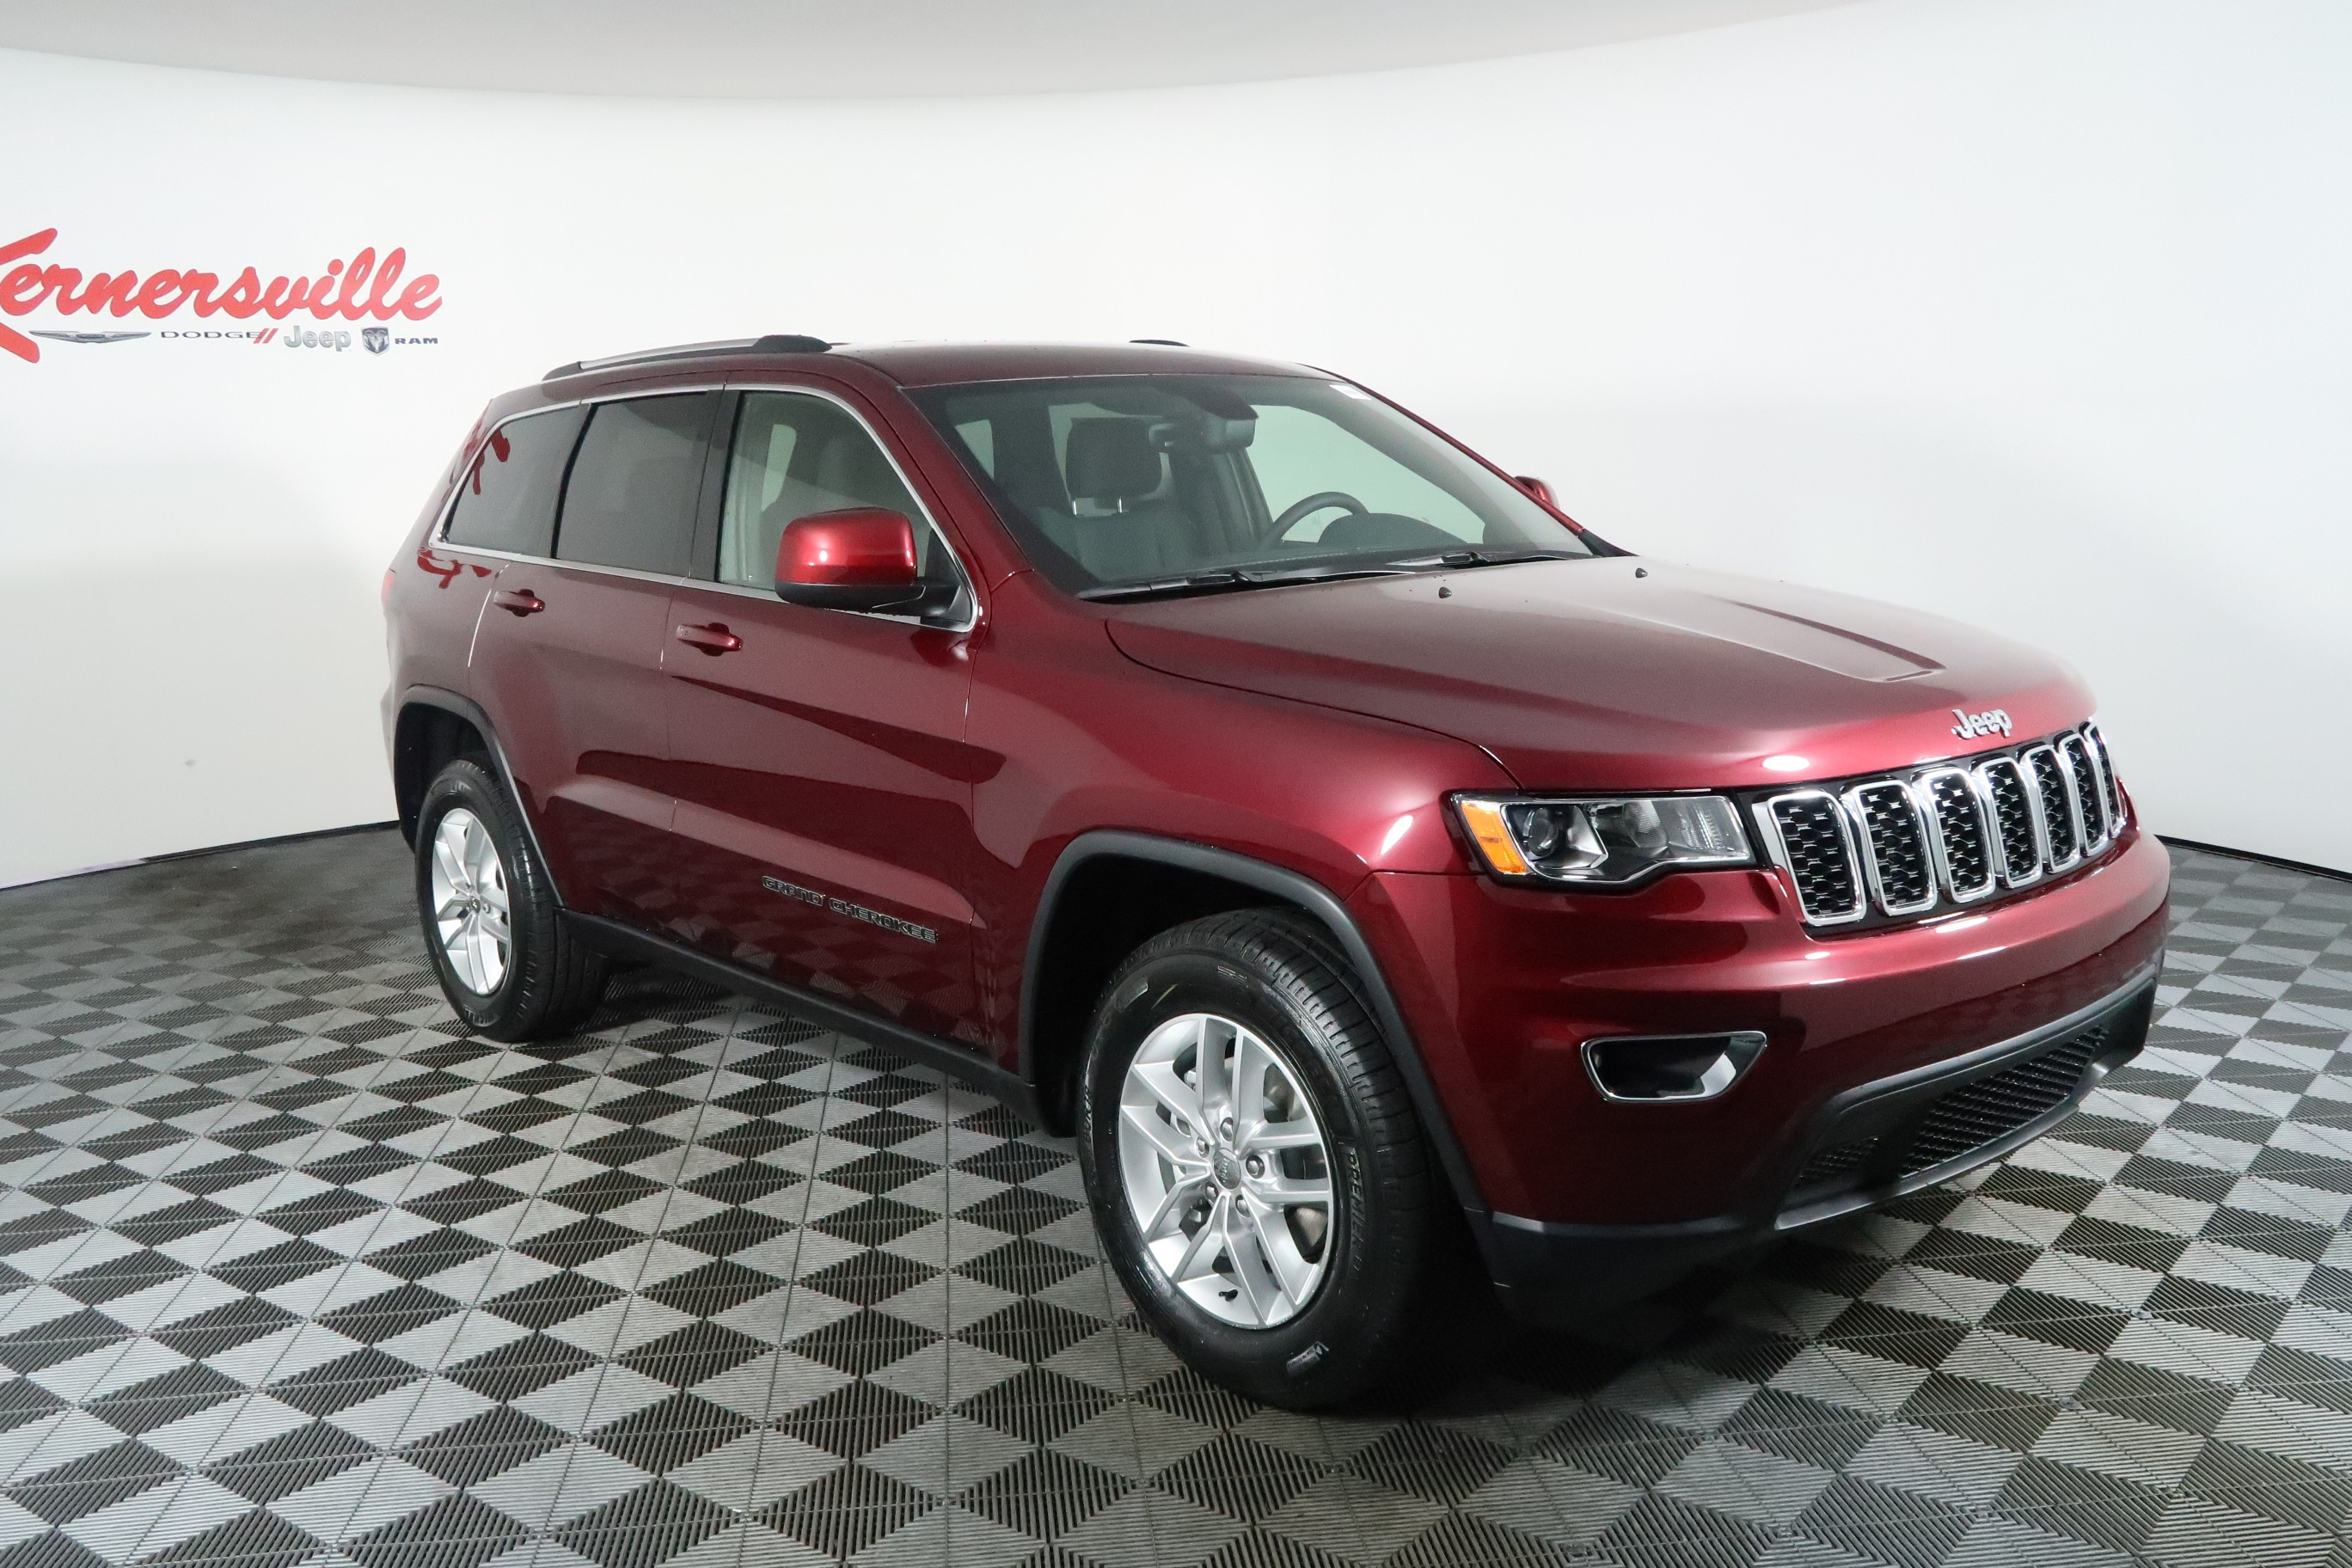 2019 jeep grand cherokee for sale in kernersville nc kernersville chrysler dodge jeep ram. Black Bedroom Furniture Sets. Home Design Ideas